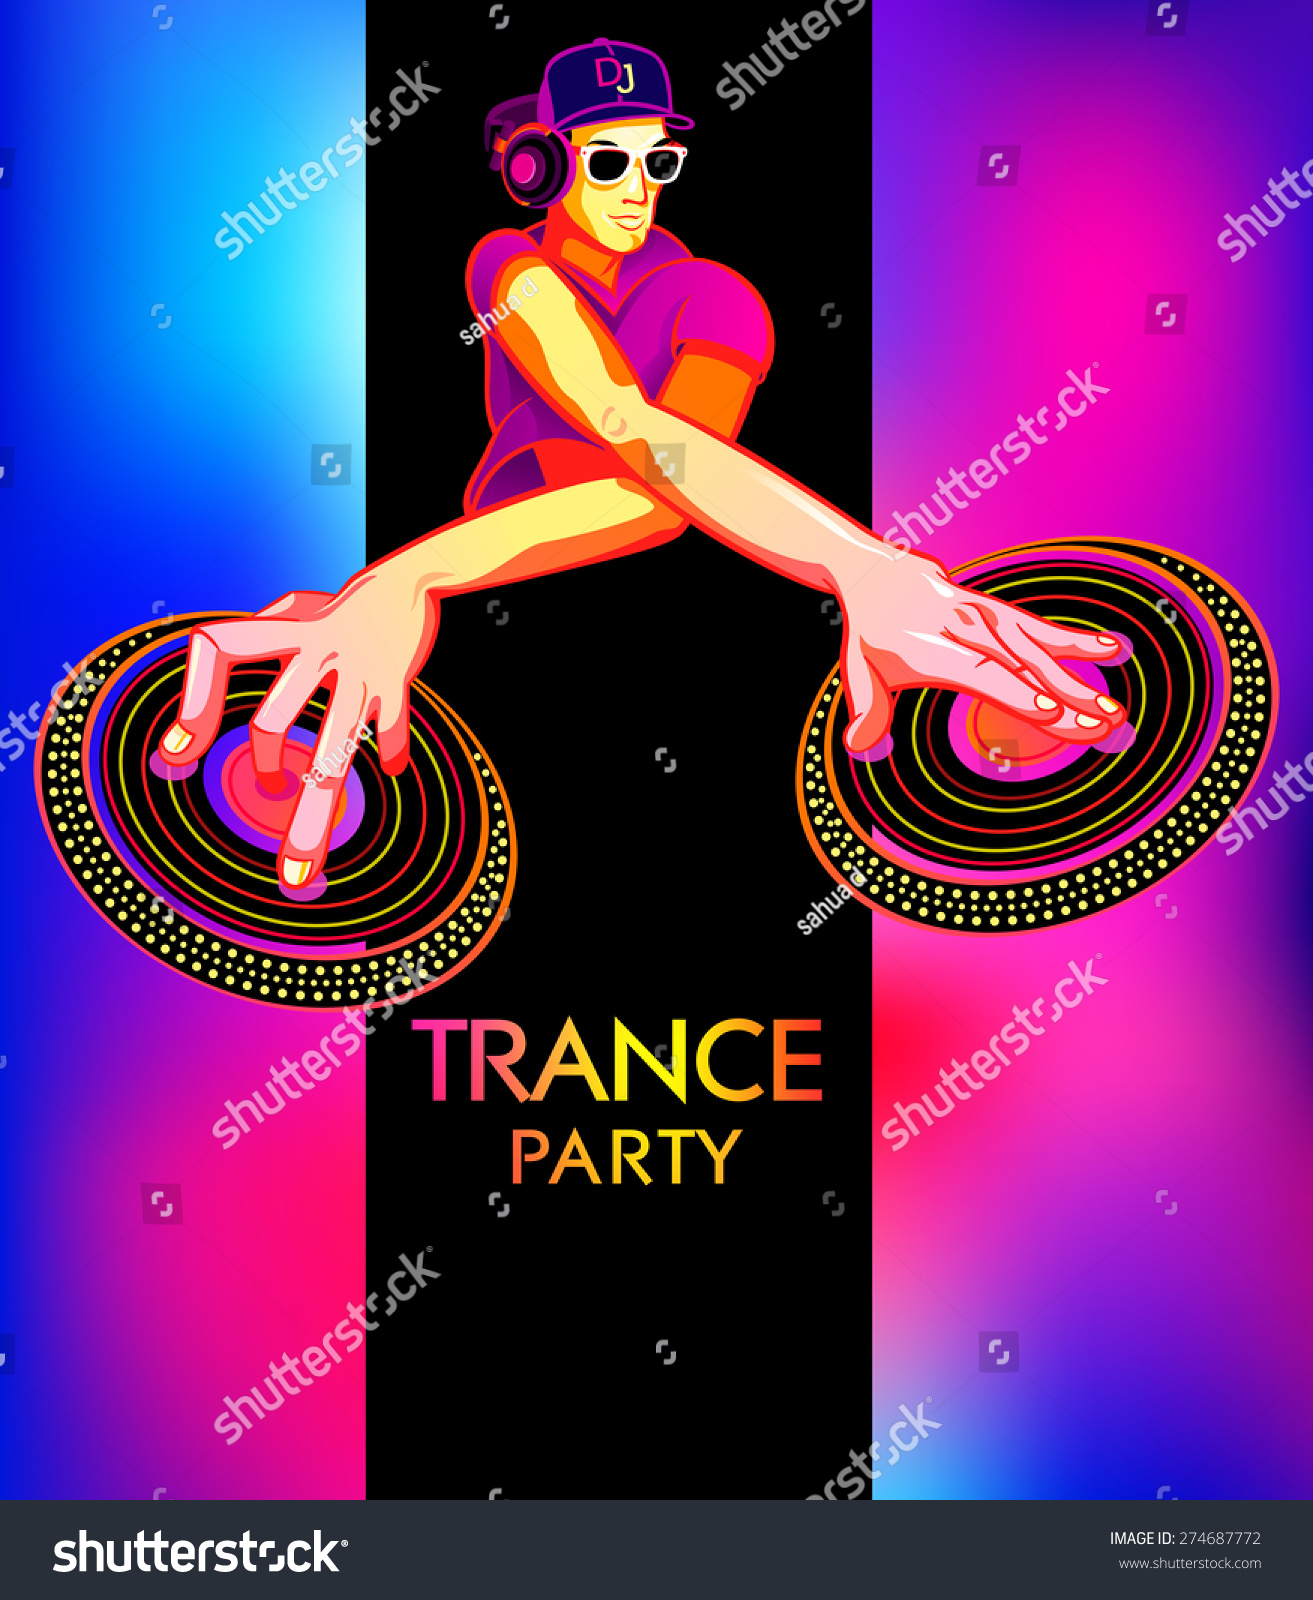 Poster Template Club Dj Trance Party Stock Vector 274687772 ...